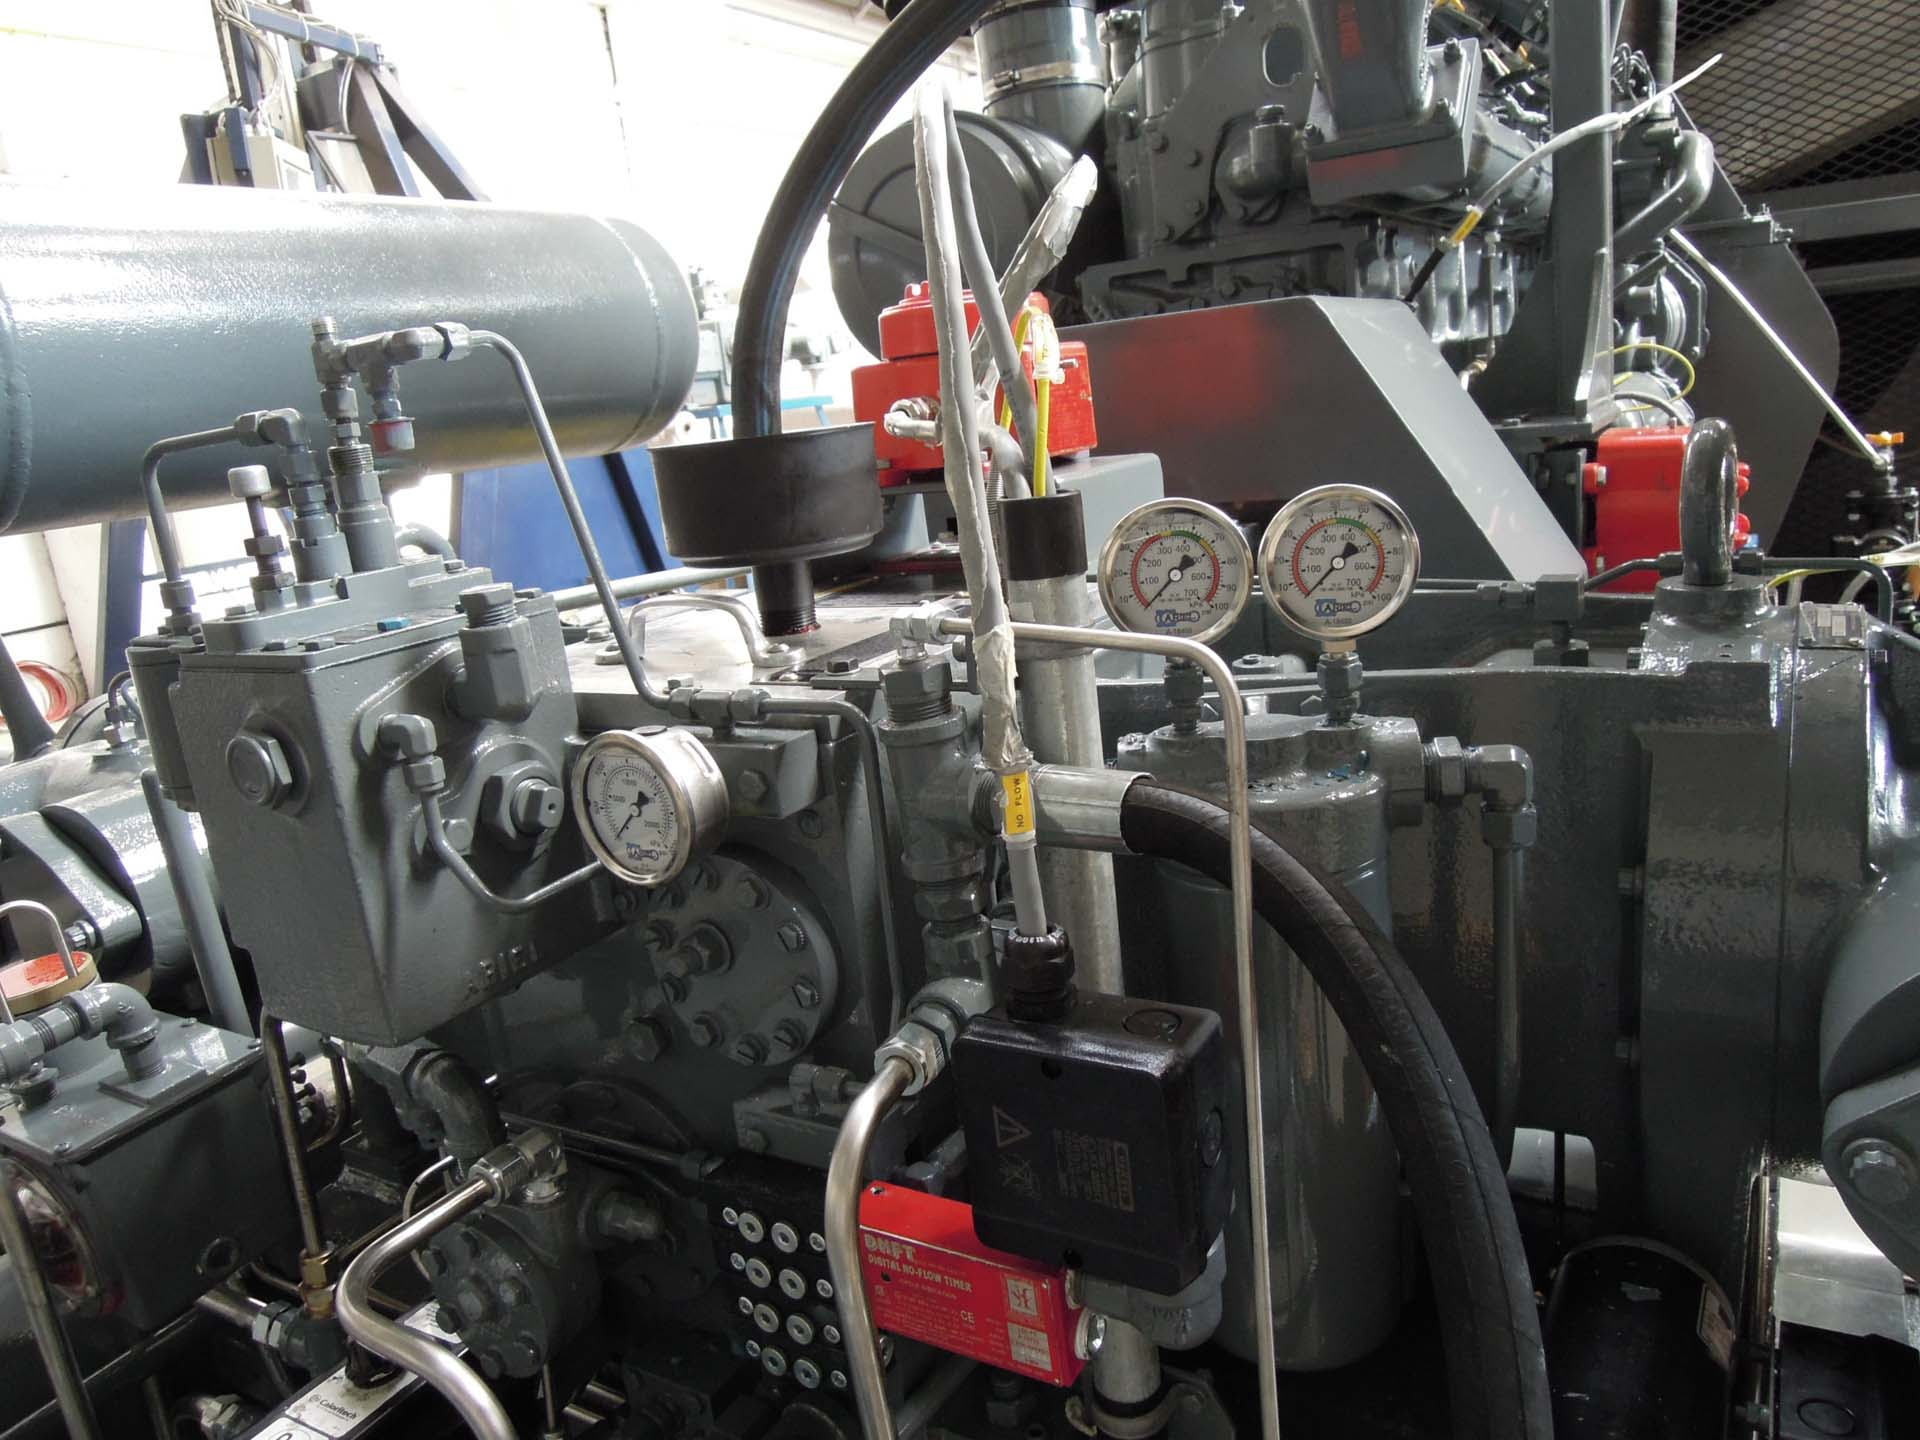 Ariel JGQ2 and Caterpillar 3406 engine – Euro Gas Systems